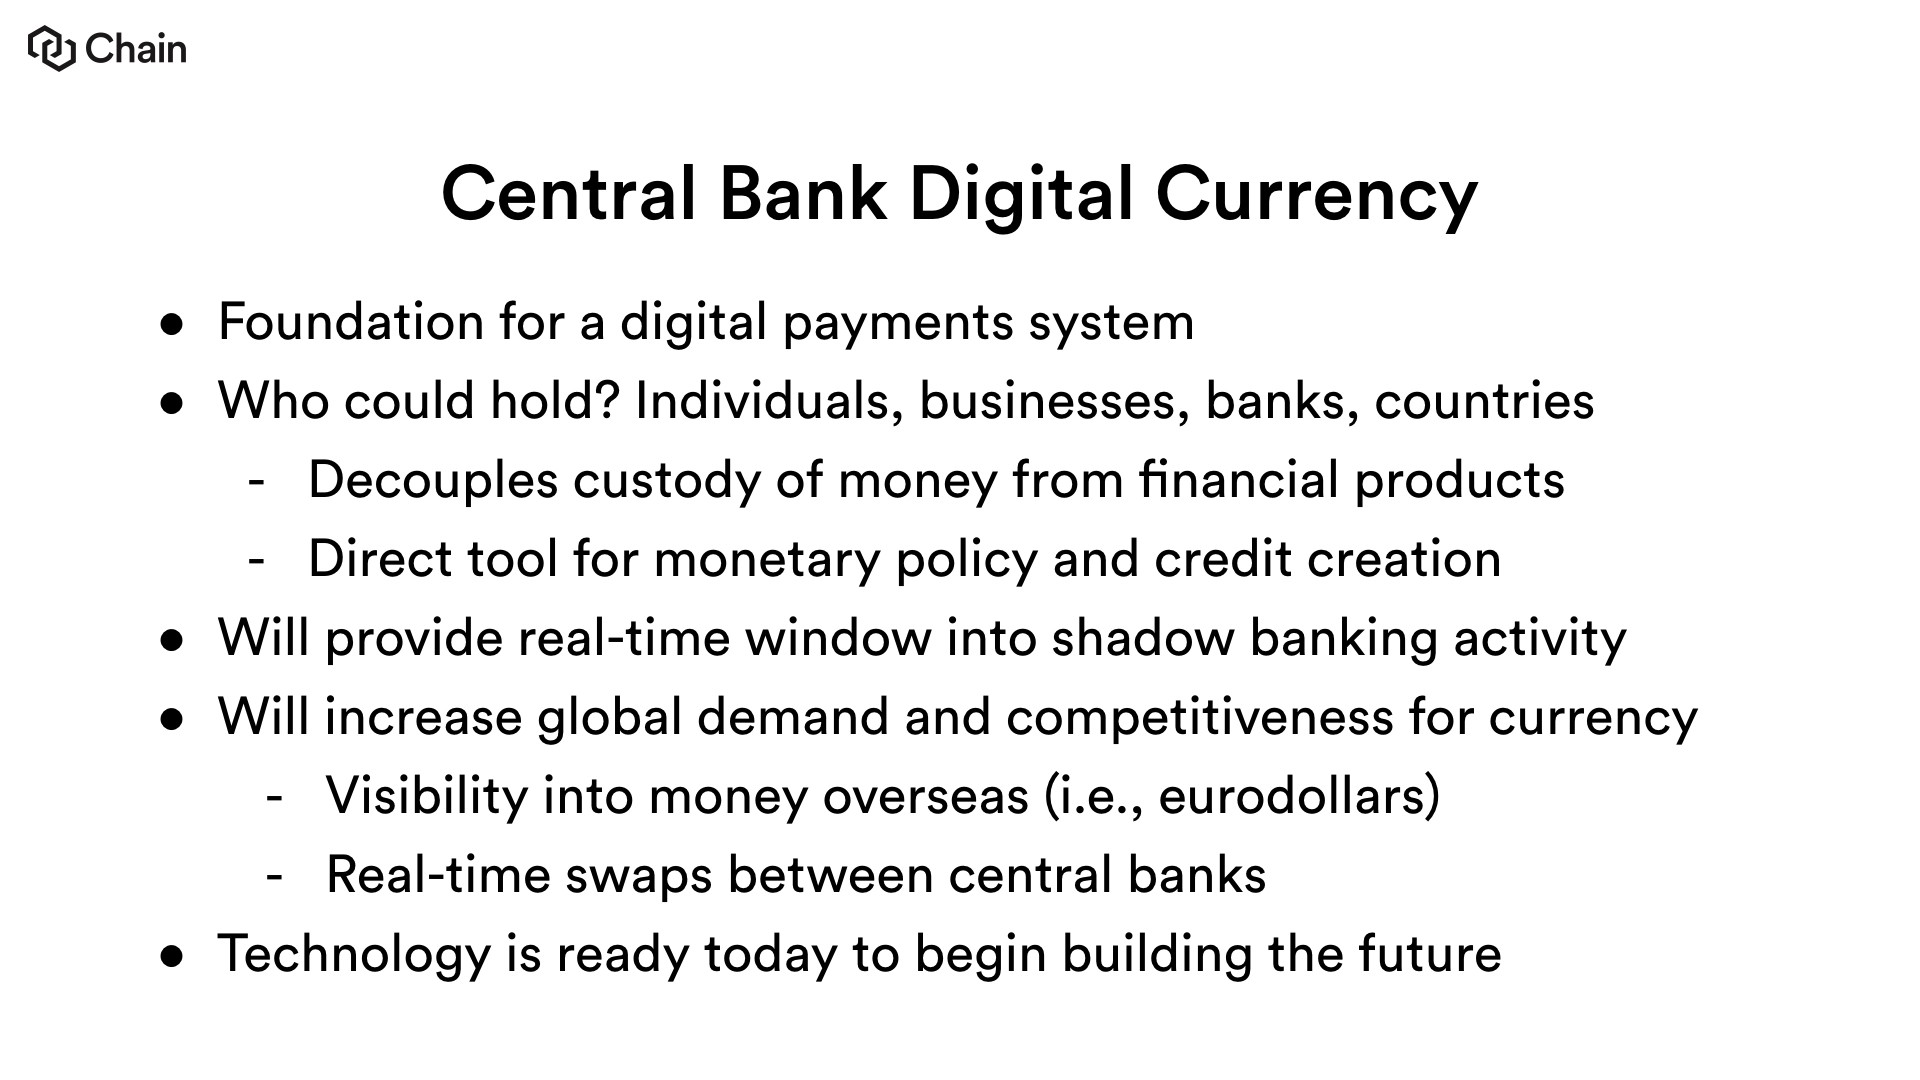 Why Central Banks Will Issue Digital Currency - Chain